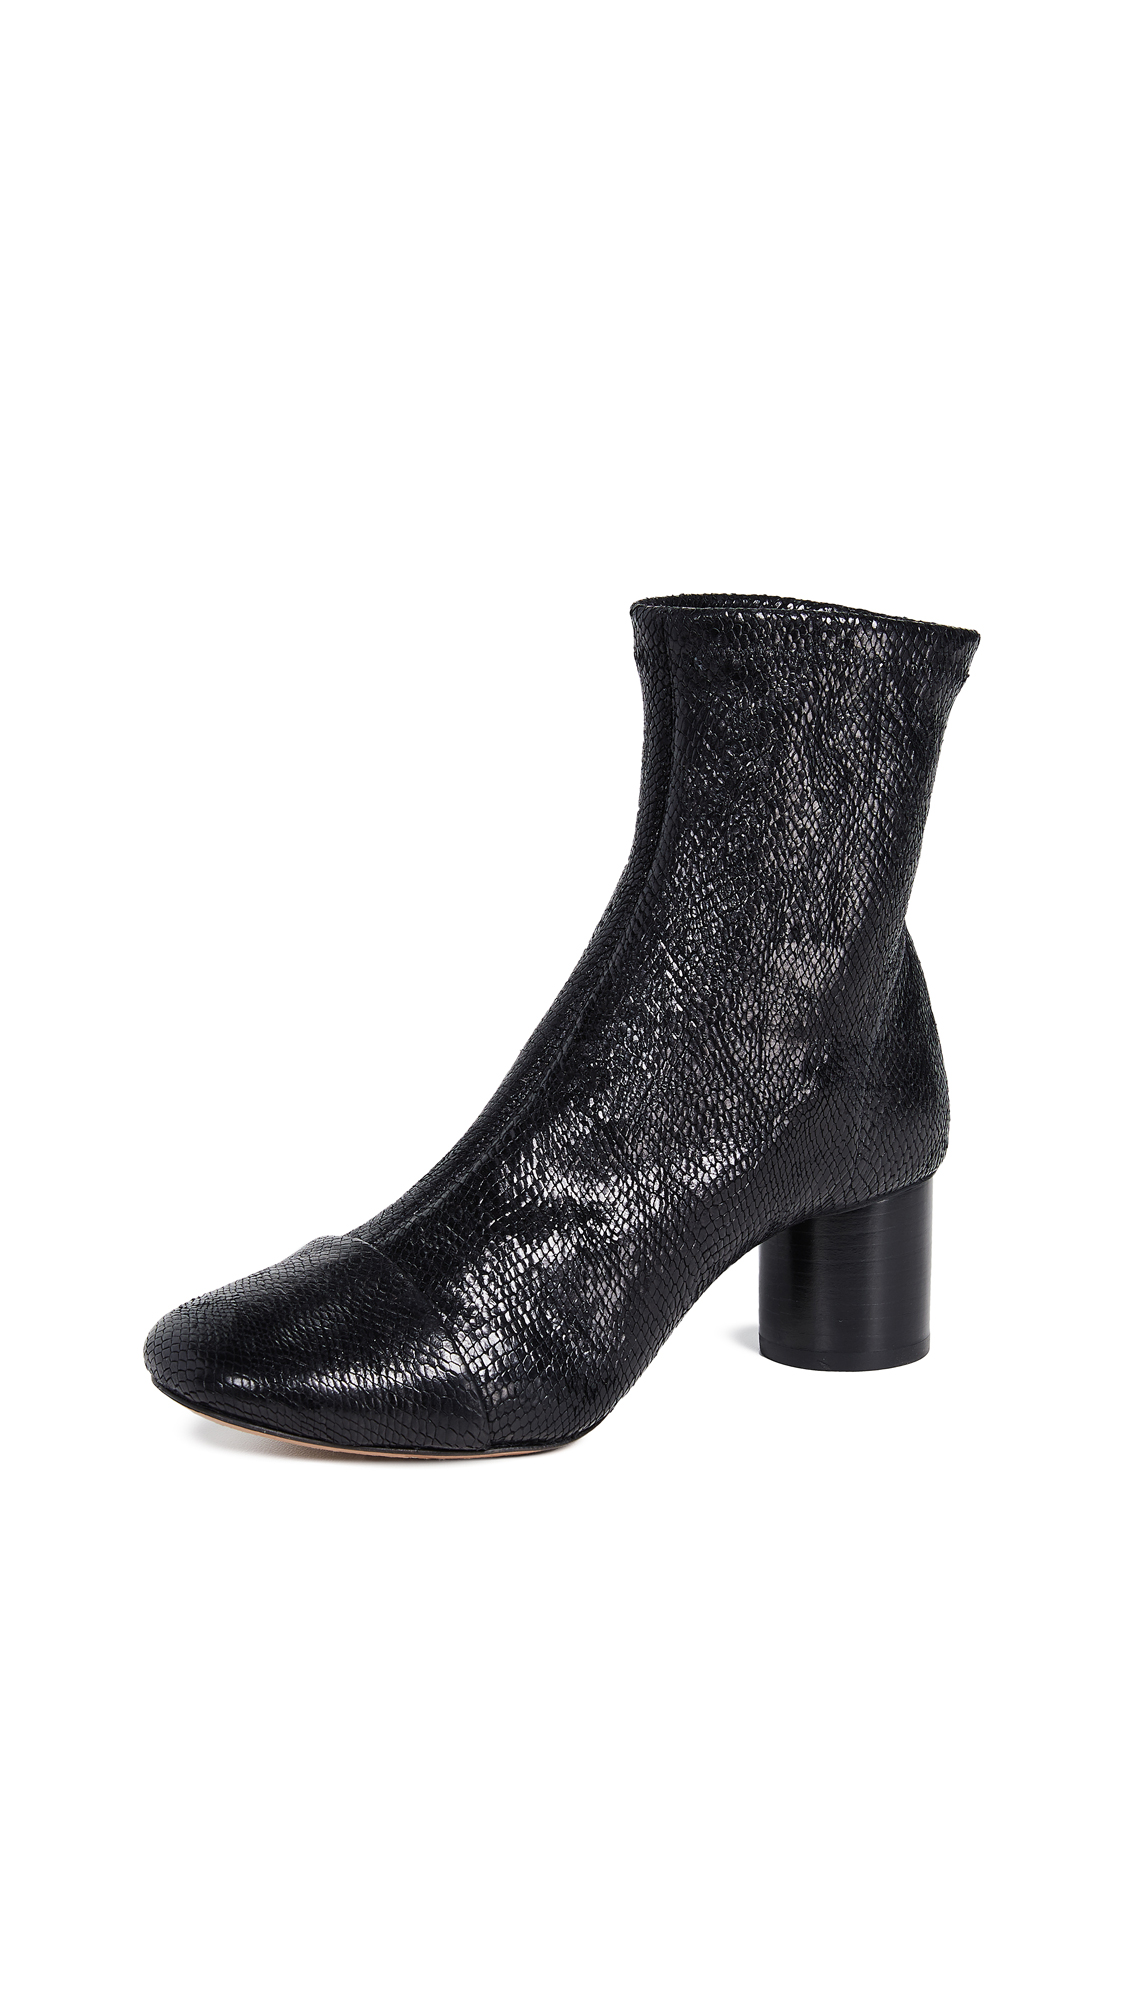 Isabel Marant Datsy Booties - Black